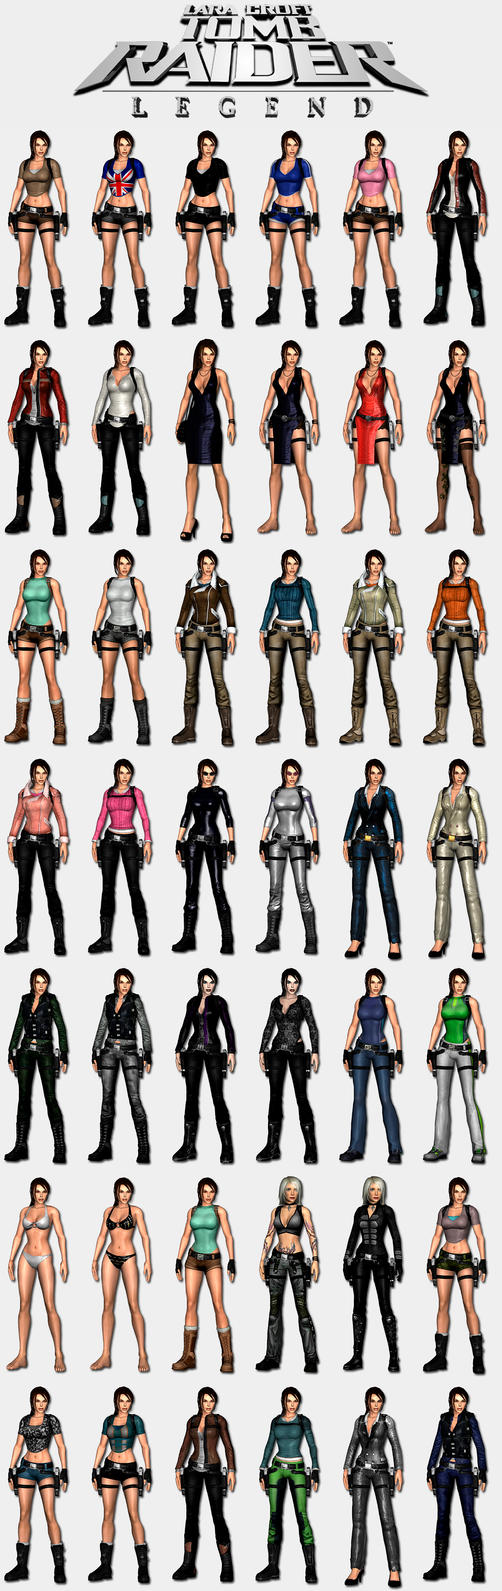 Tomb raider legend outfits xxx exposed picture